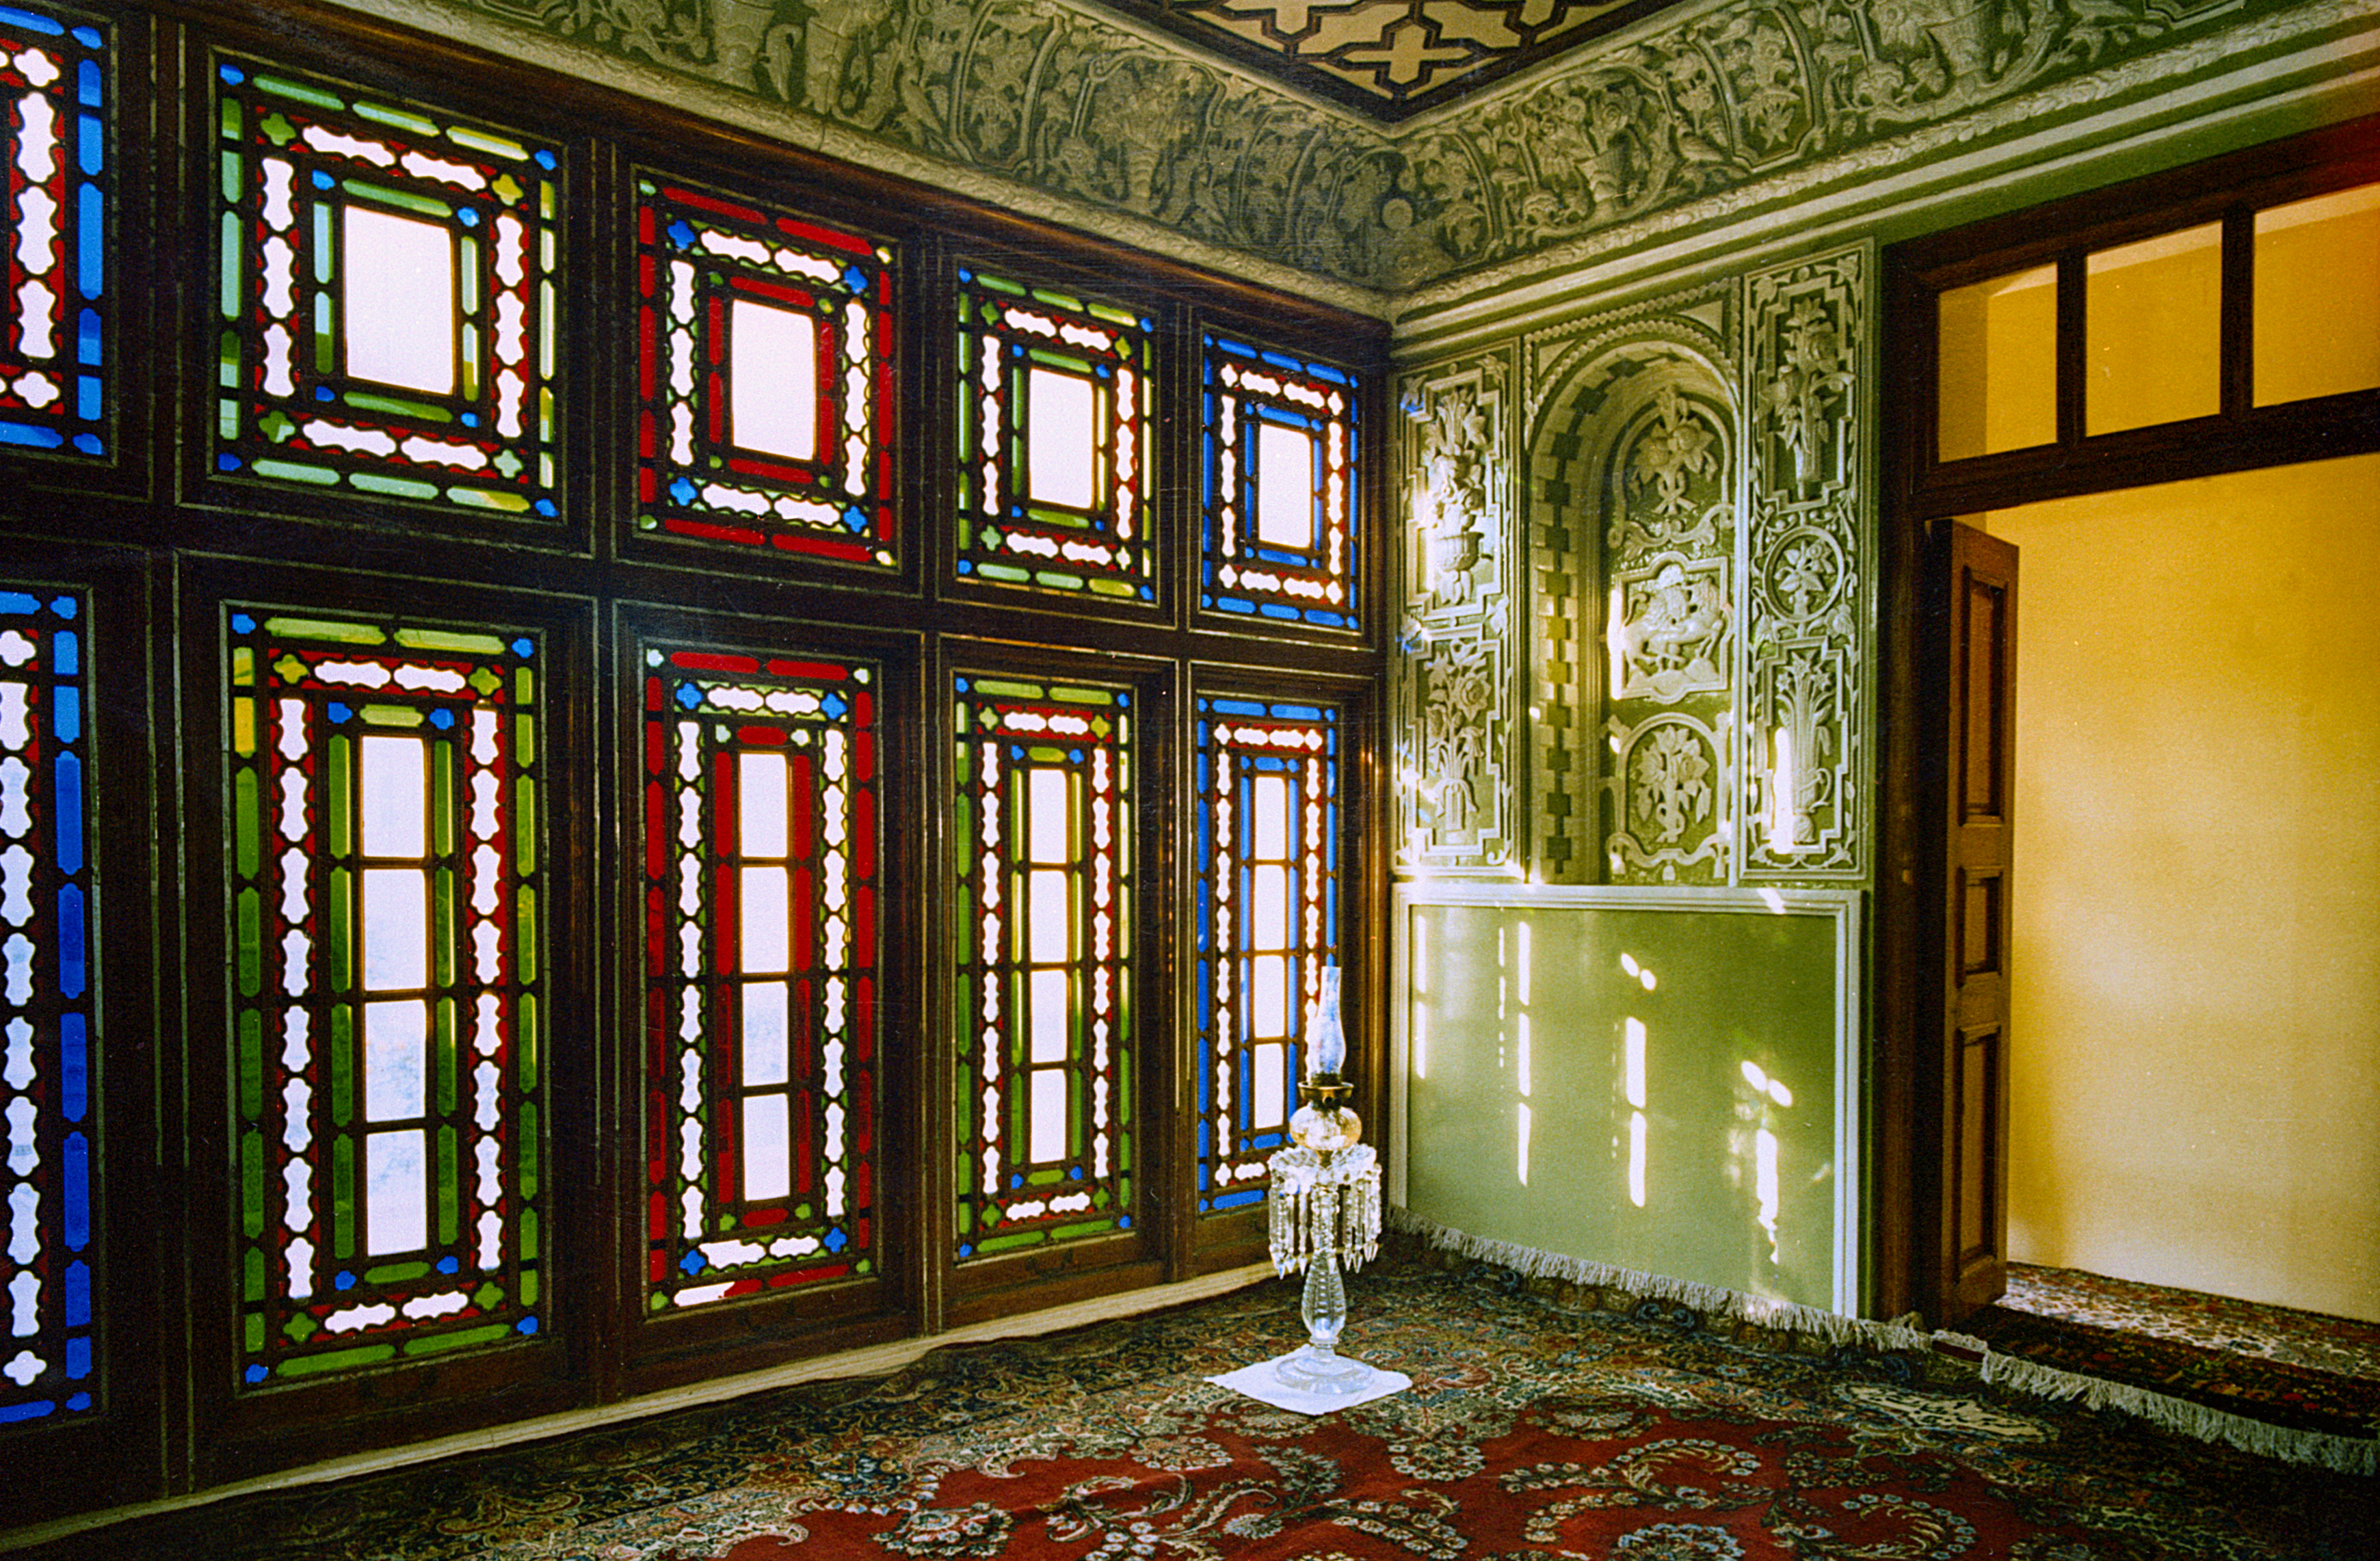 The room in the House of the Báb where the Báb declared His Mission in Shiraz, Iran, before its destruction in 1979.